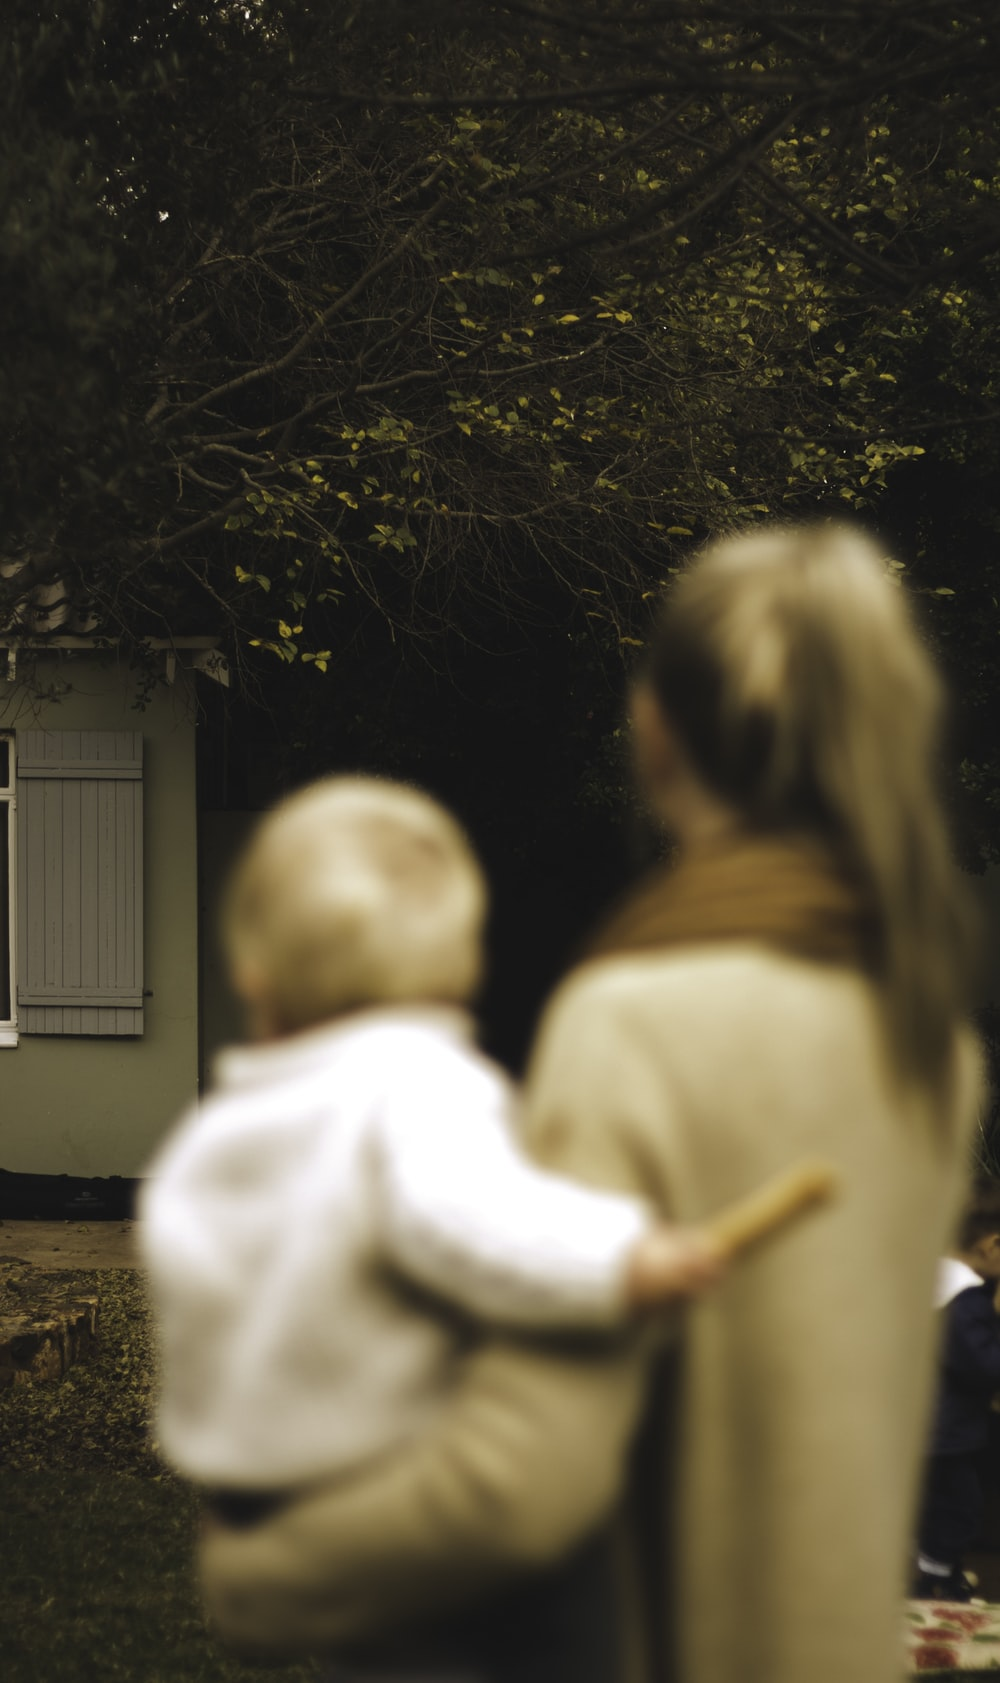 shallow focus photography of woman carrying baby in front of house